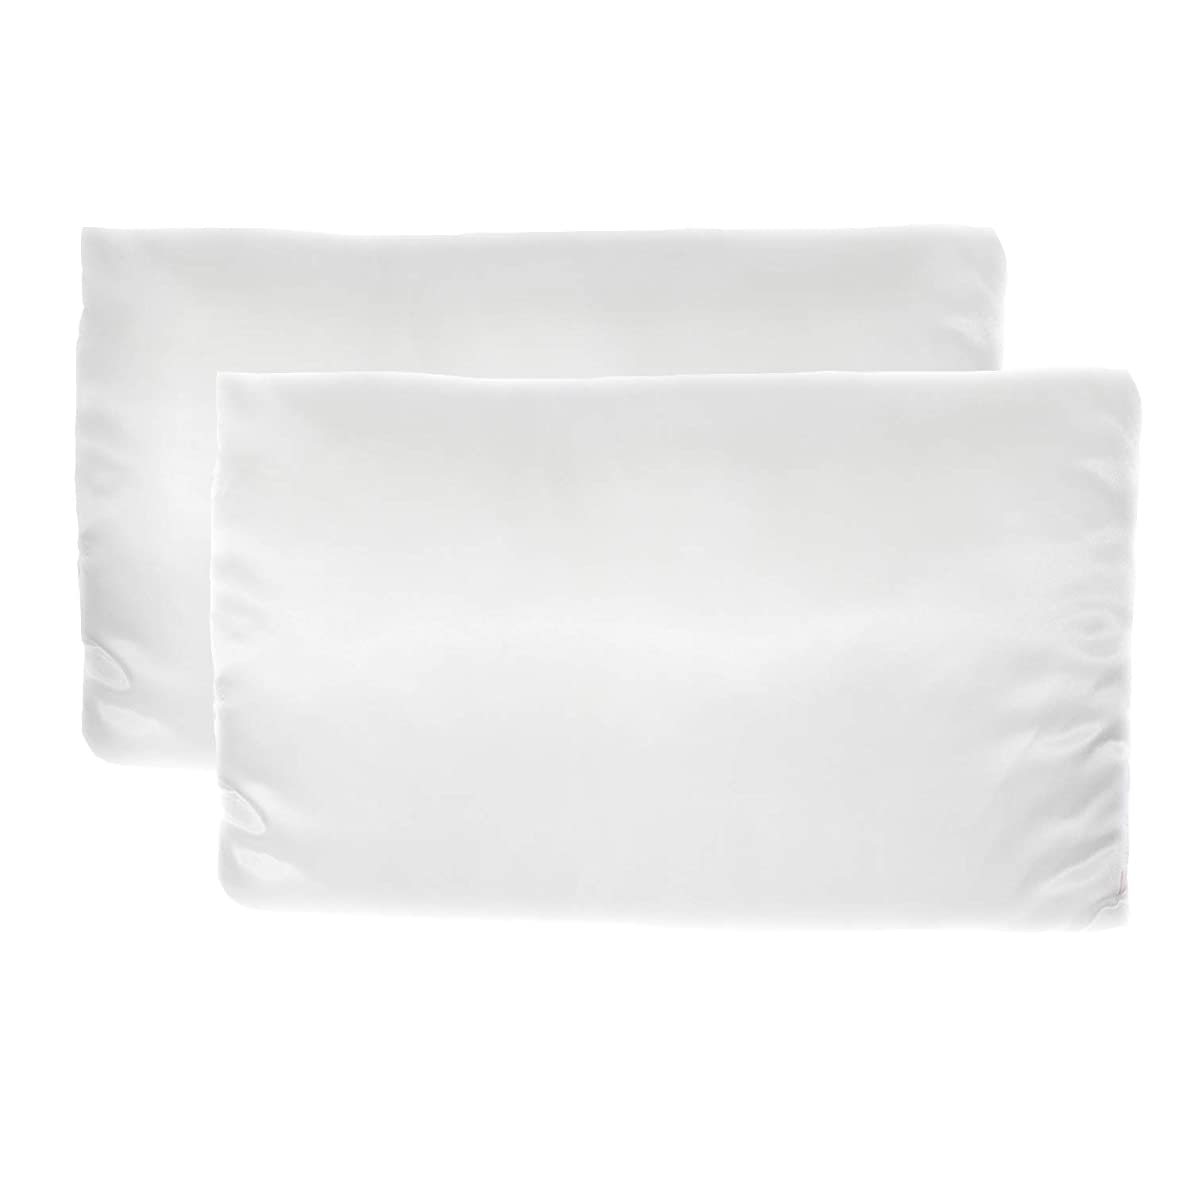 Revive Luxury Satin Pillowcase Set, 2 Standard Size Cooling Pillowcases, Machine Washable, Extends Blowouts and Curls, Anti-Aging - White